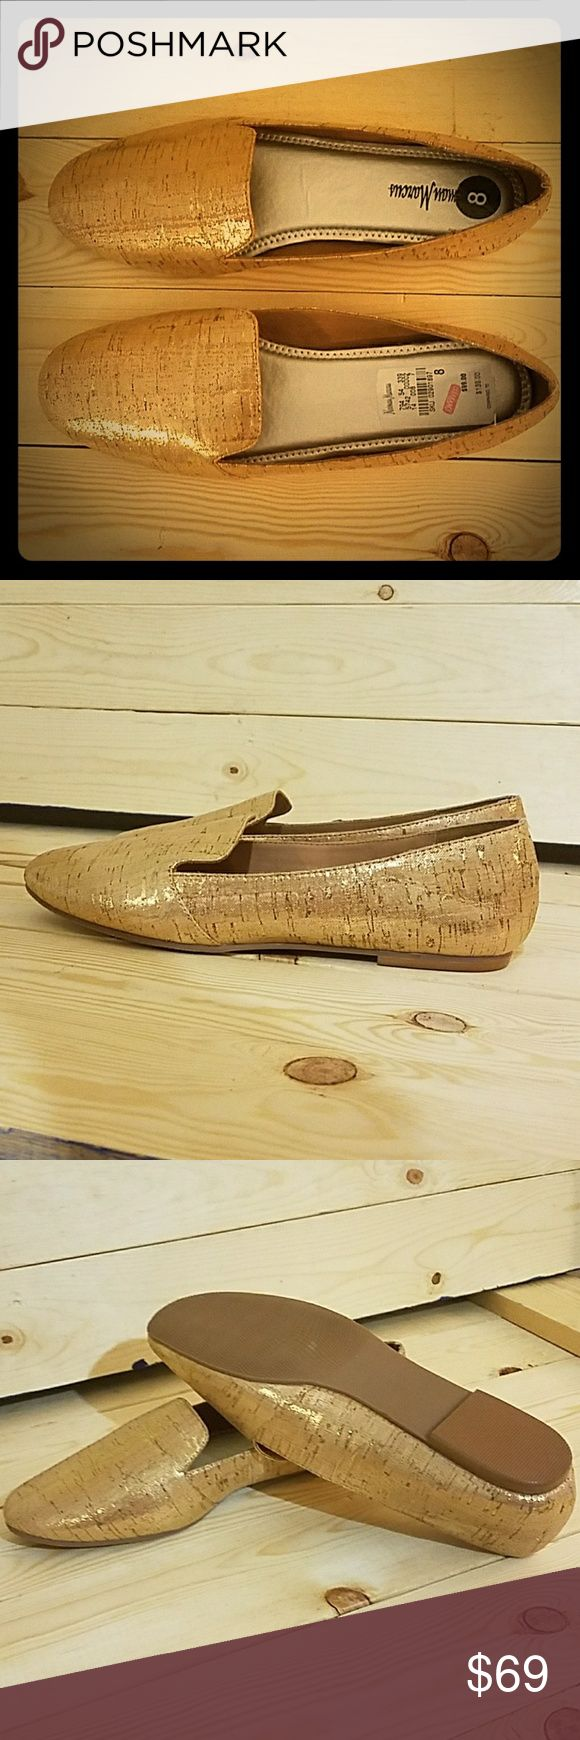 NEIMAN MARCUS Gold Mettalic Loafer Flat *NEW Fun shoe! Brushed mettalic gold flat in new condition. NEVER worn. Still has original pricing stickers in sole. Neiman Marcus Shoes Flats & Loafers